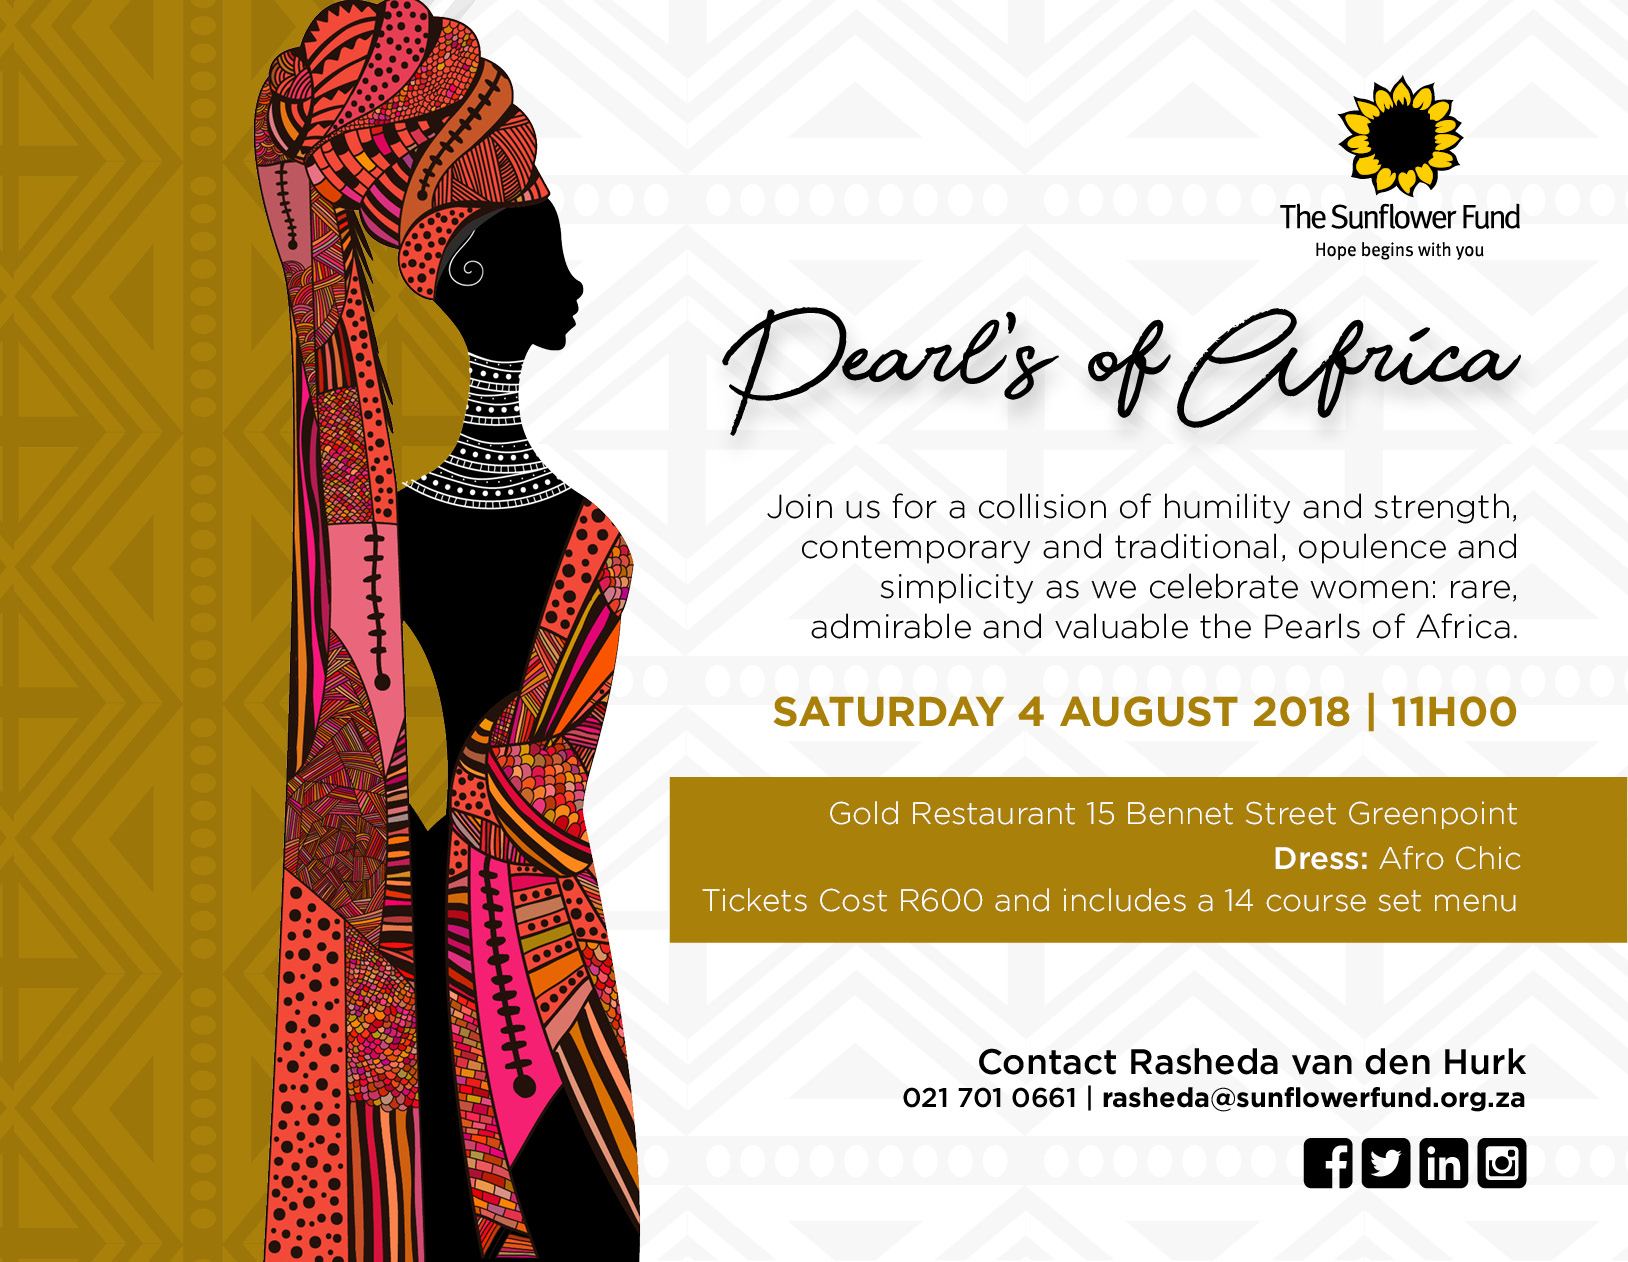 womans-day-event_invitation_04-august-2018